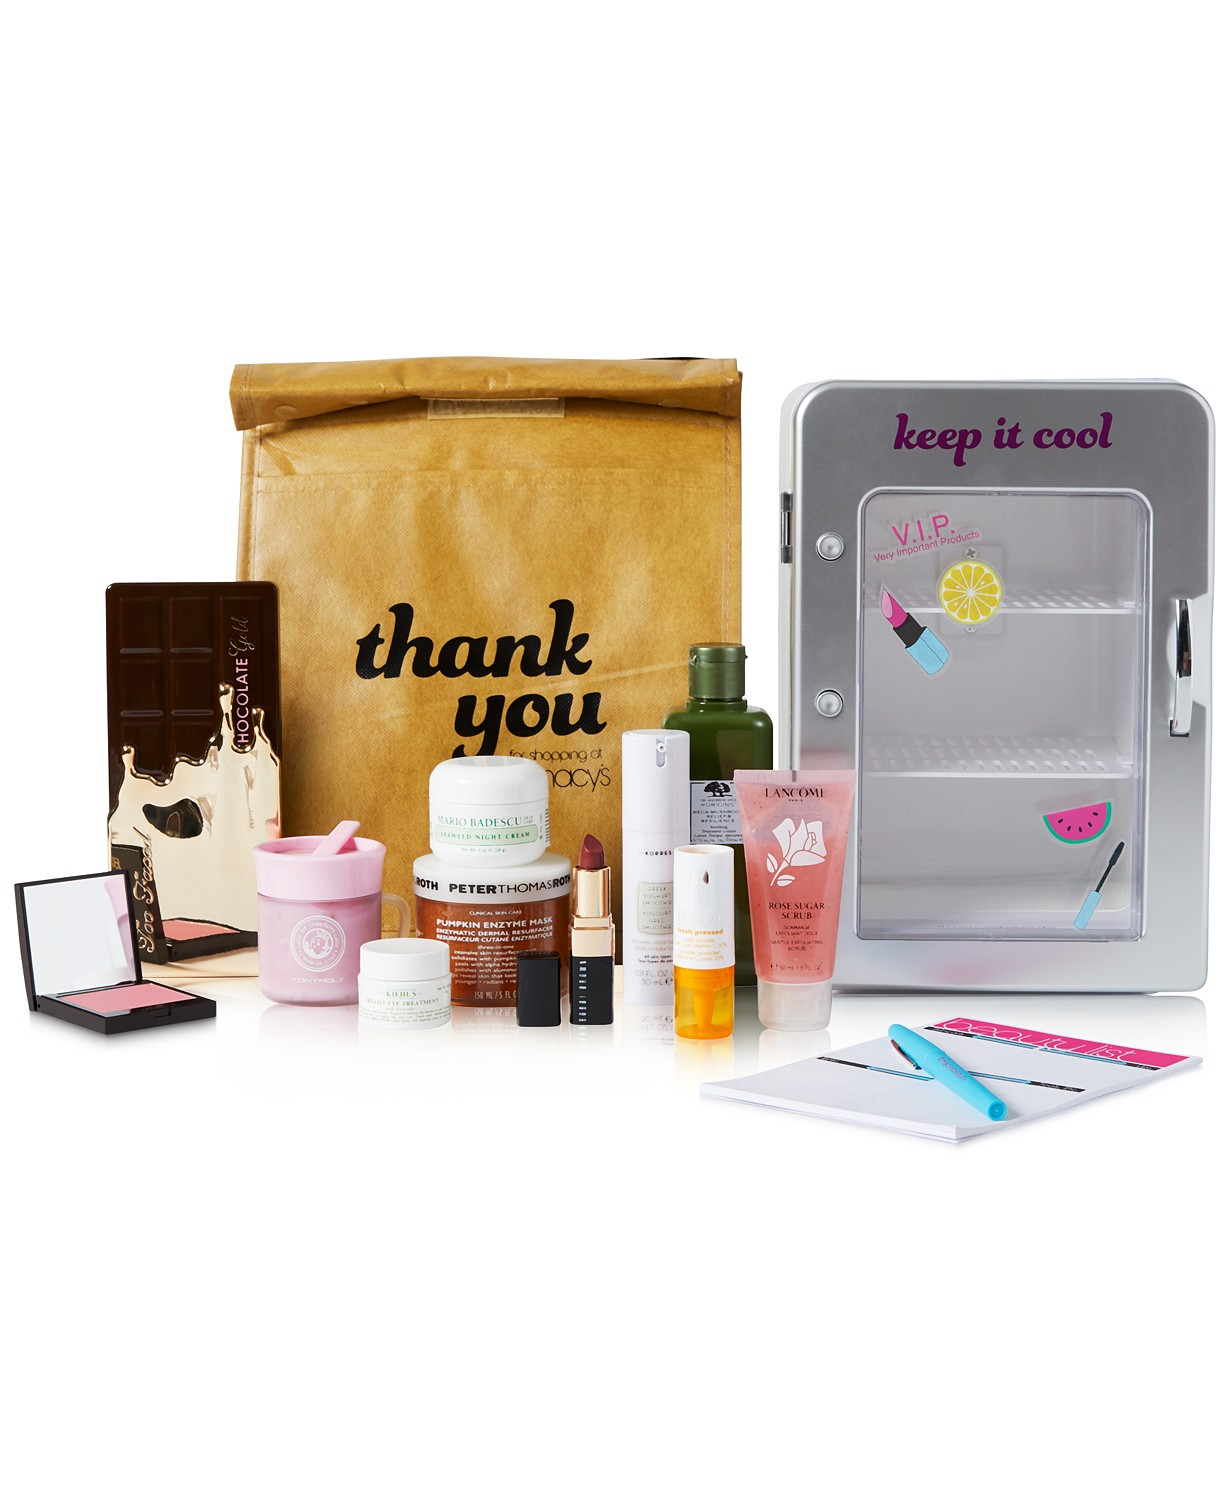 Macy S Beauty Influencer Keep It Cool Set With Skincare Fridge And Food Inspired Products